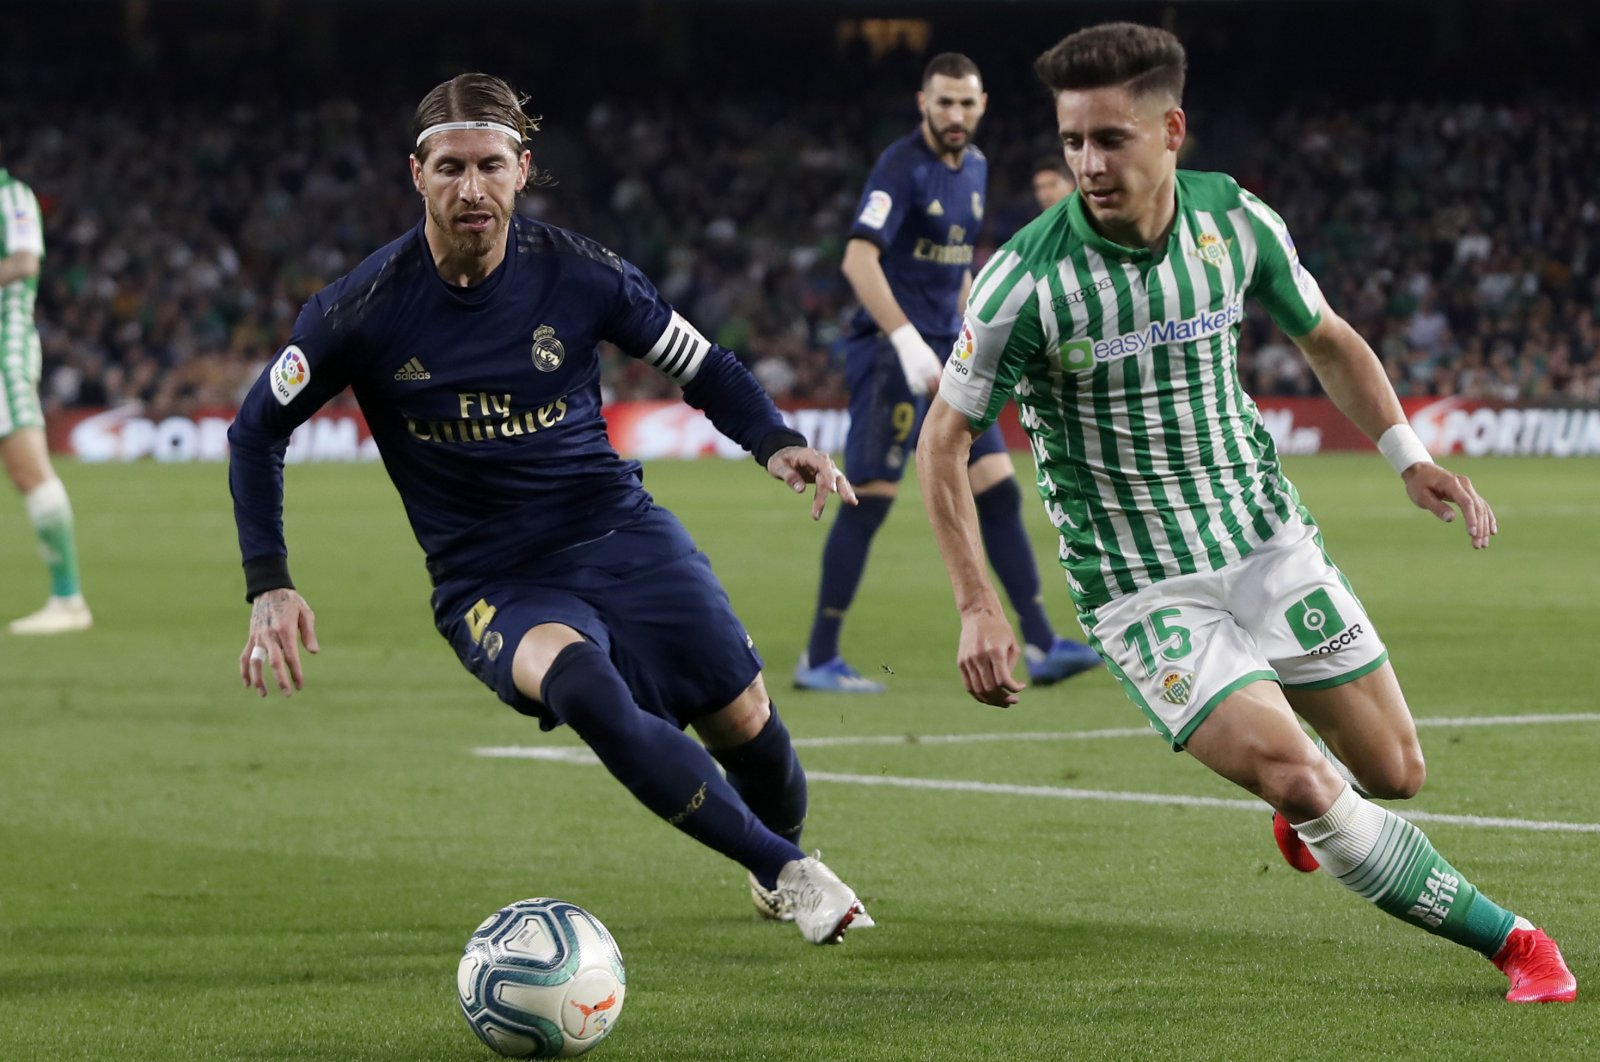 Real Madrid's Sergio Ramos fights for the ball against Betis' Alex Moreno during a La Liga match in Seville, Spain, March. 8, 2020. (AP Photo)